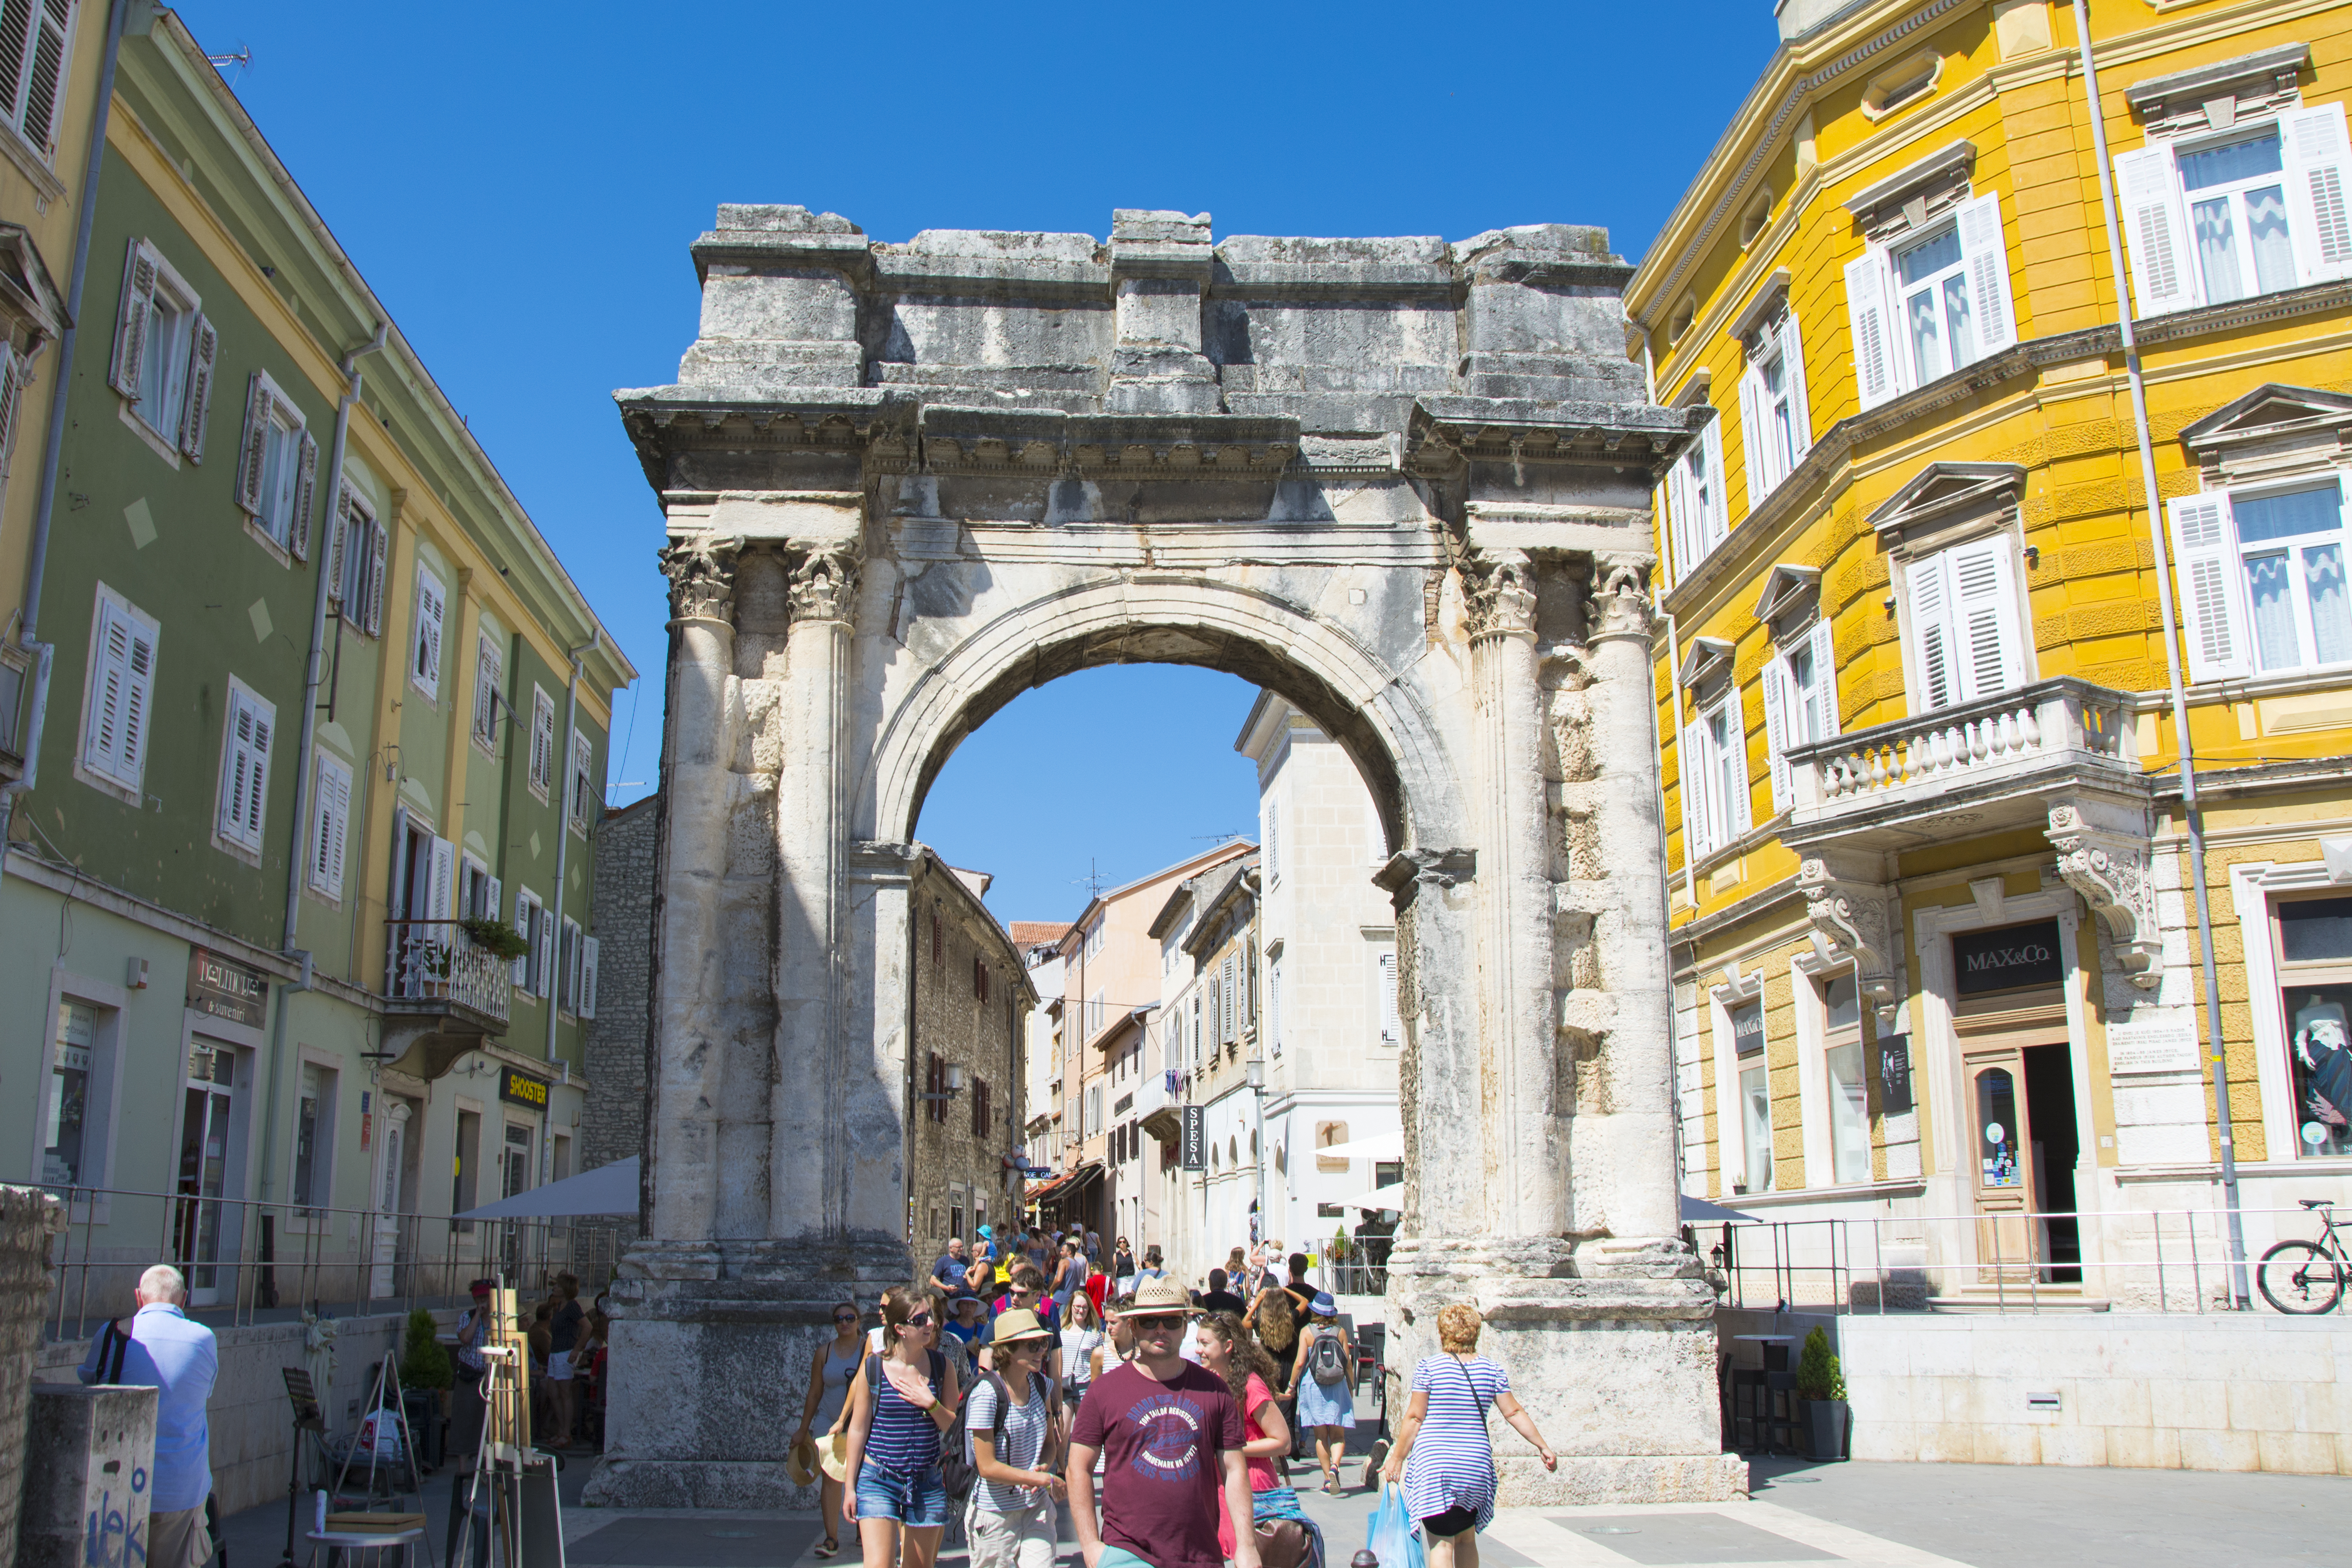 Arch of the Sergii pula kroatien